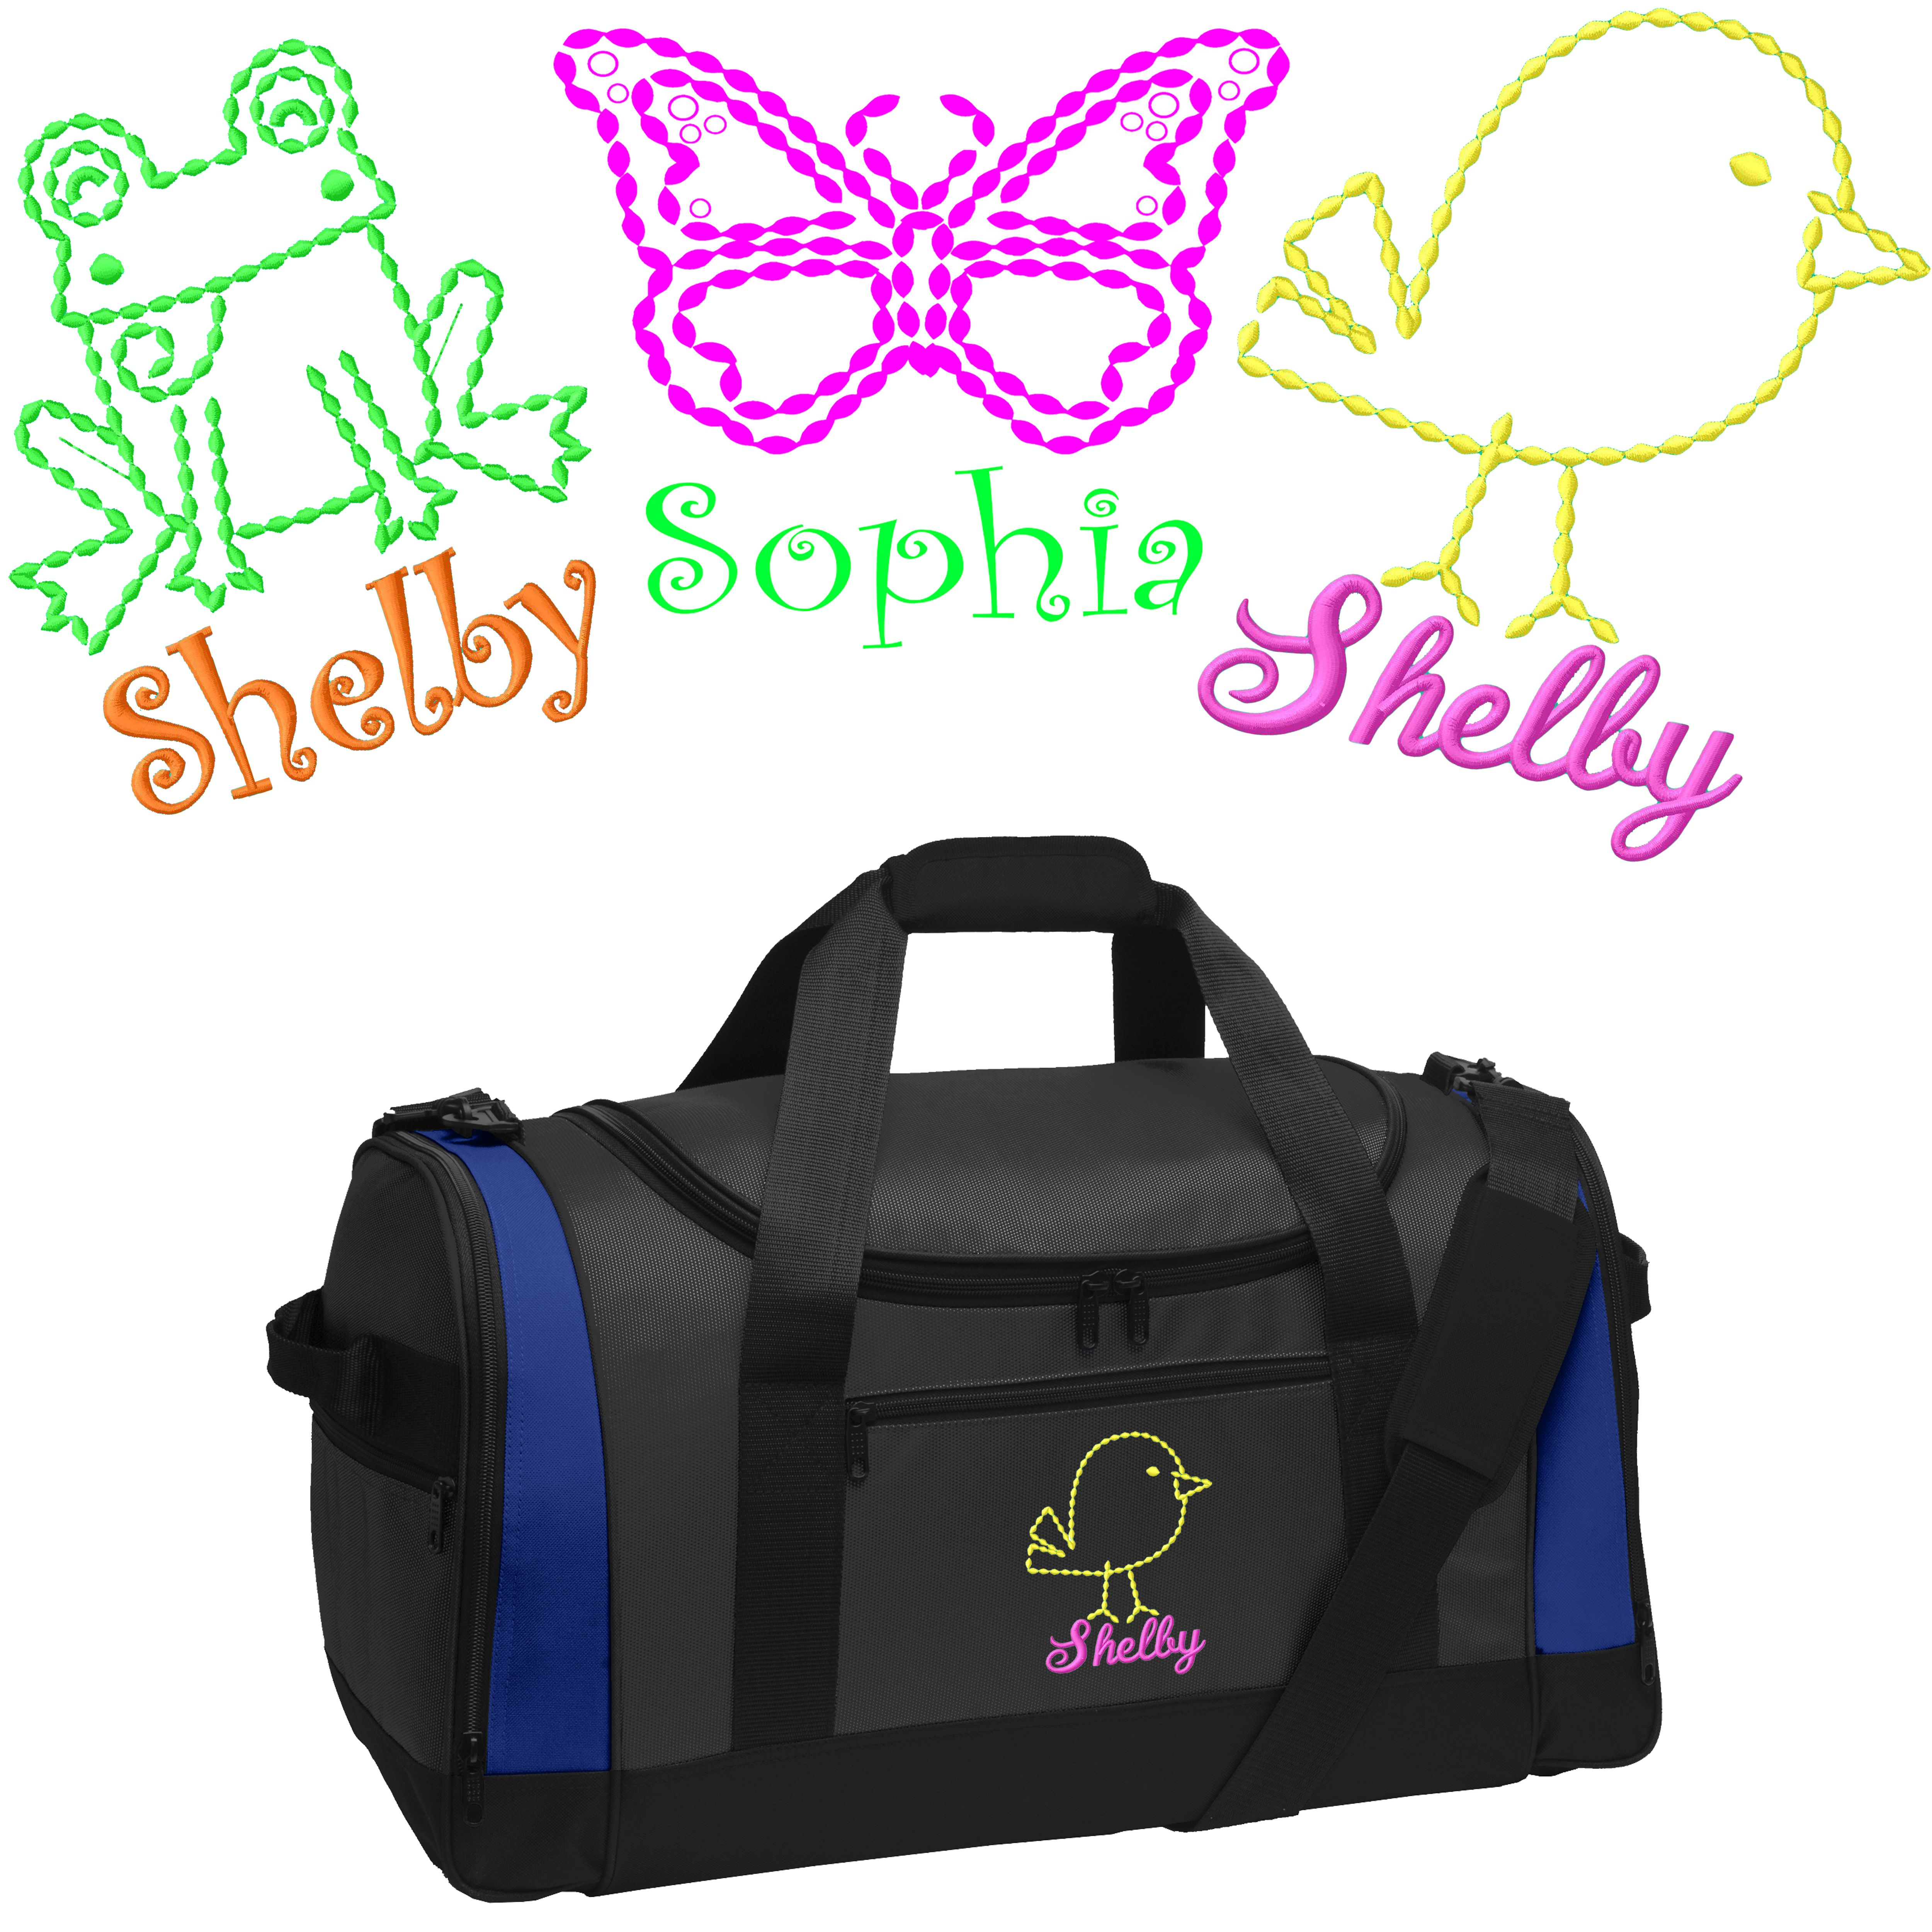 Personalized Crown Voyager Sports Duffel Bag